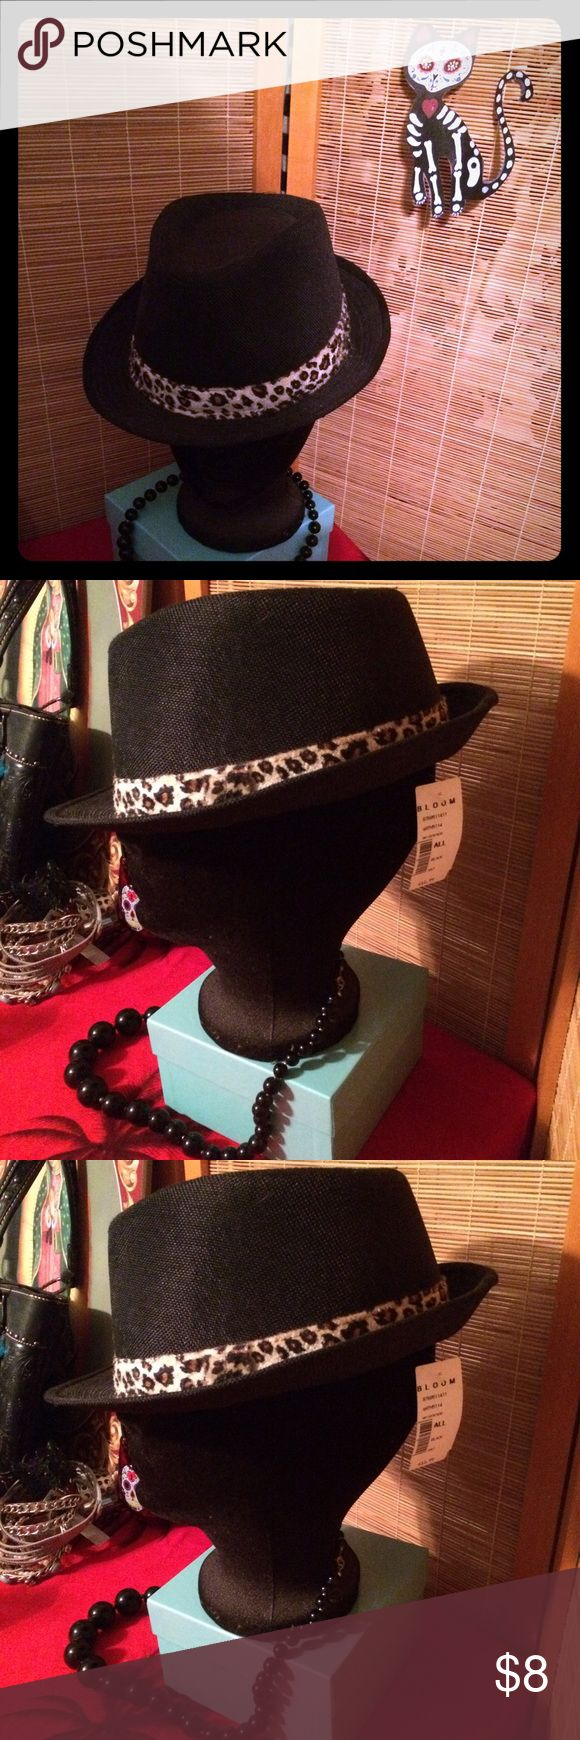 Leopard Trim Black Women's Fedora Hat and necklace Leopard Trim Women's Black Fedora Hat & Black Bead Necklace. Hat still has tag on it. Hat was $11.99 and necklace was $10. Both for $8. Quick & stylish solution to a bad hair day.🙎🏻👾 Jewelry Necklaces